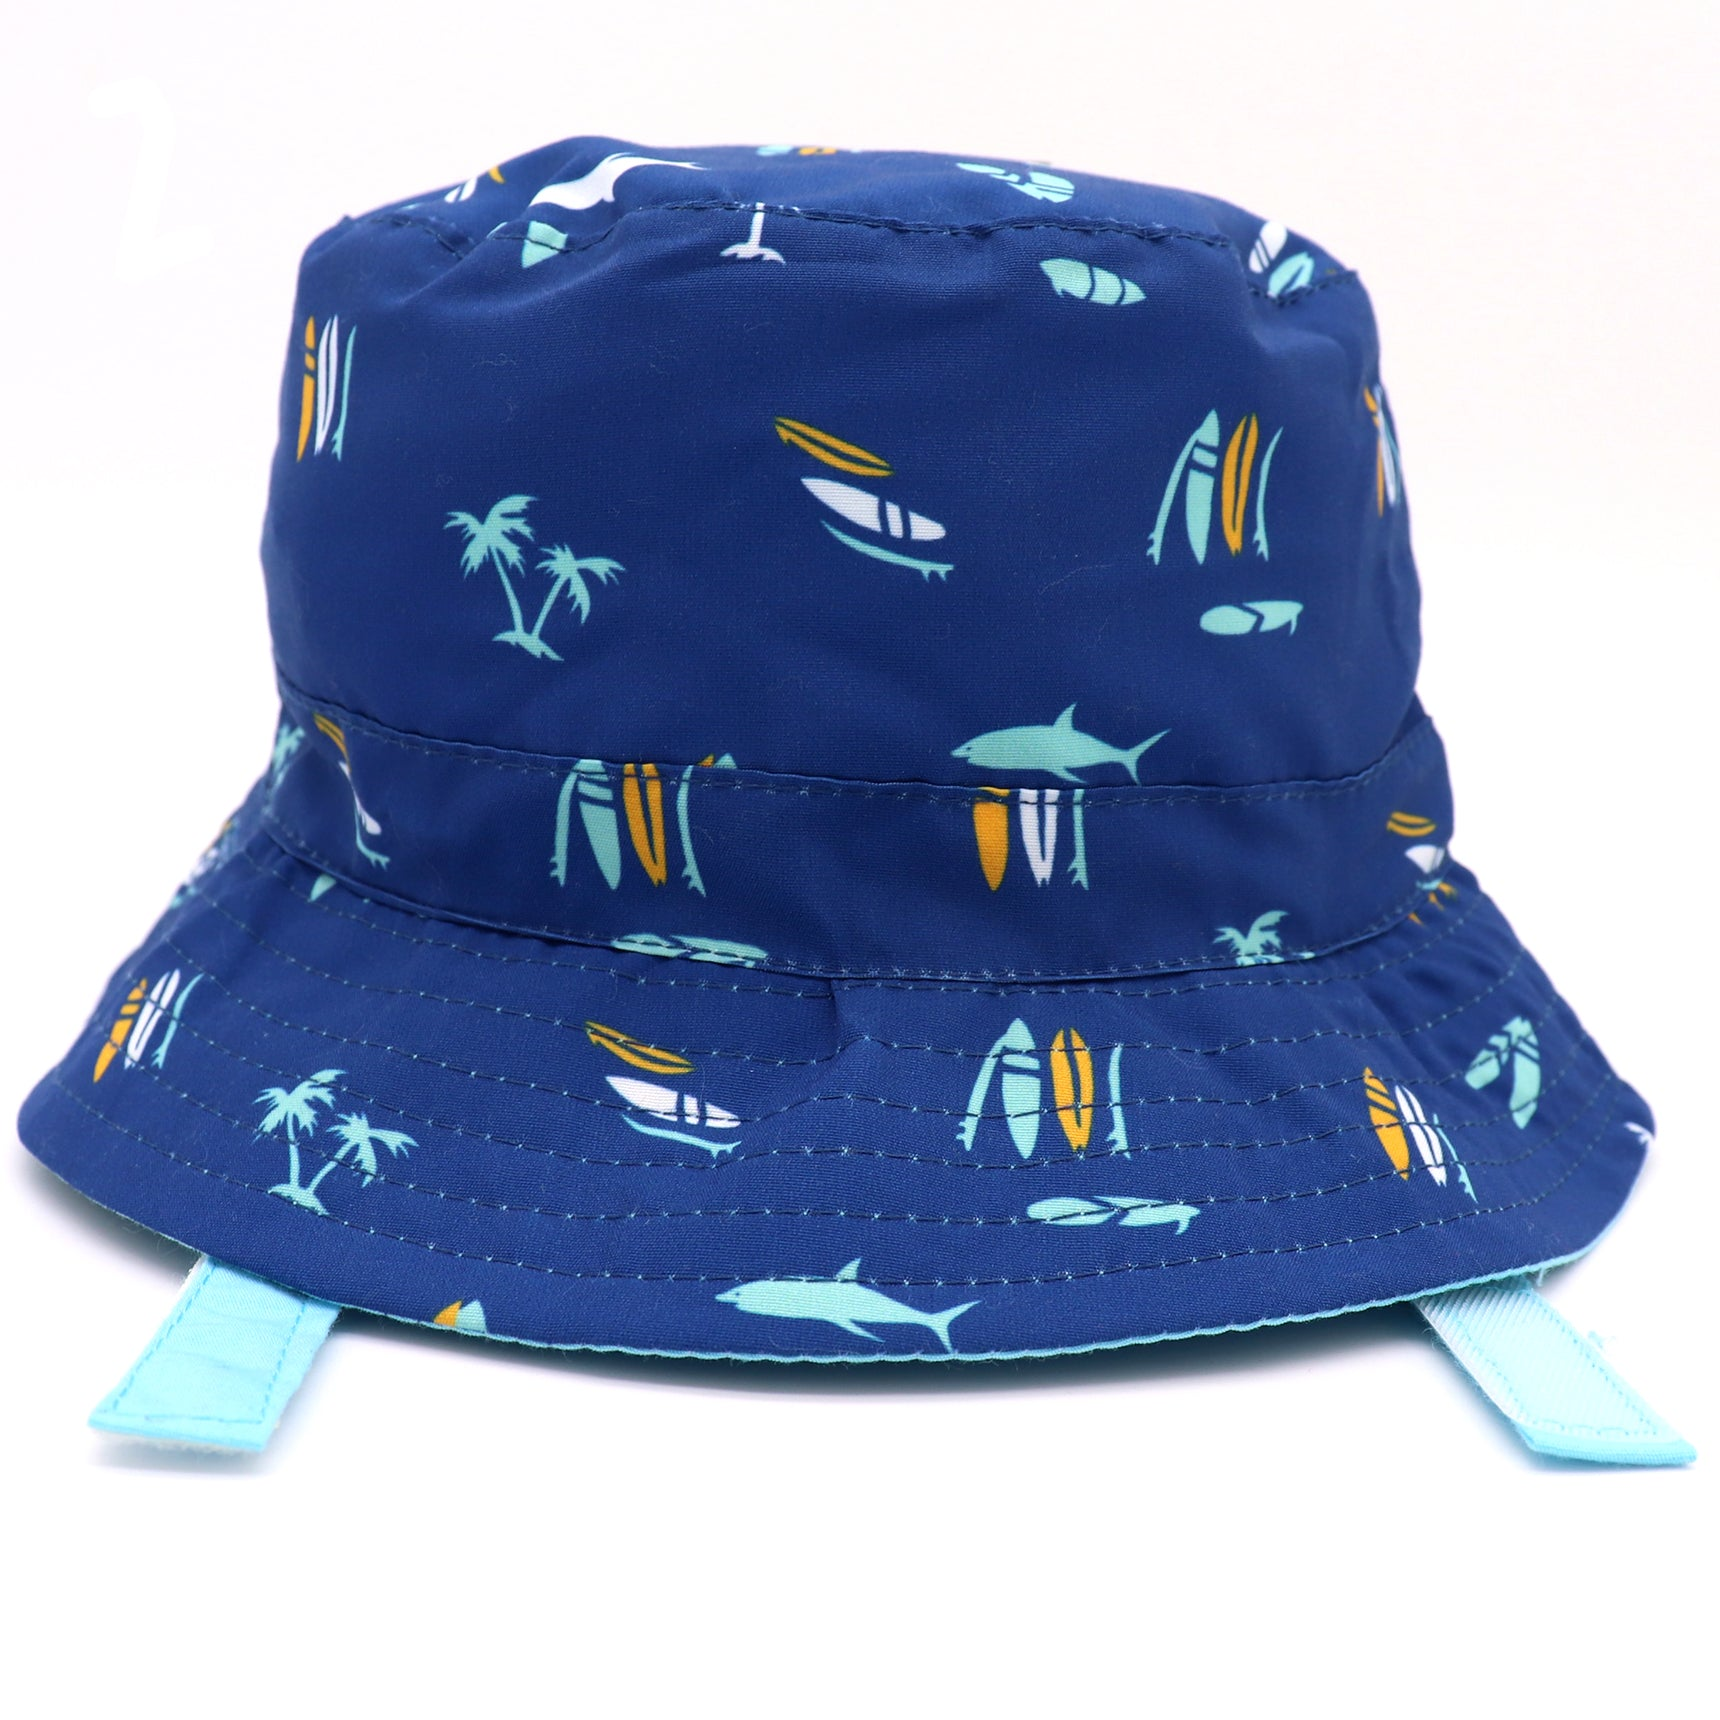 Kids bucket hat with built in UV protection, UPF 50+ for infants, toddler, and small children. Built in sun protection. Lightweight hat for sunny days, beach, pool, zoo, and playdates. Navy blue hat featuring palm trees, surfboards, and sharks in different solid colors, with baby blue Velcro straps. Reverses to solid baby blue hat.